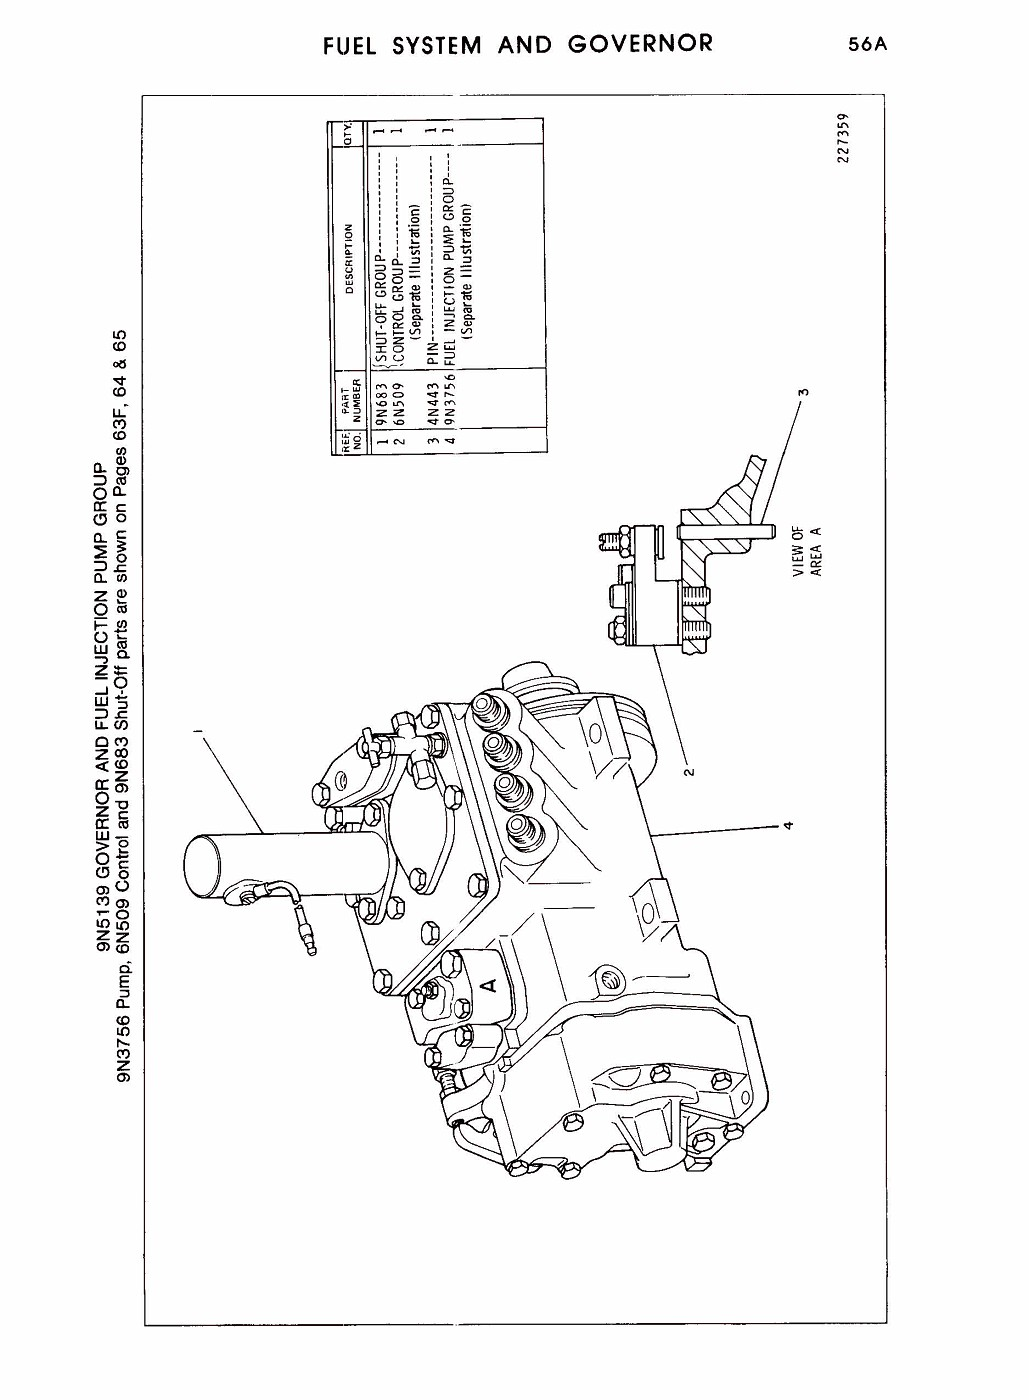 hight resolution of cat 3208 parts diagram all about foto cute cat mretmlle com caterpillar 3208 parts exploded diagram source used caterpillar 3208 marine engine